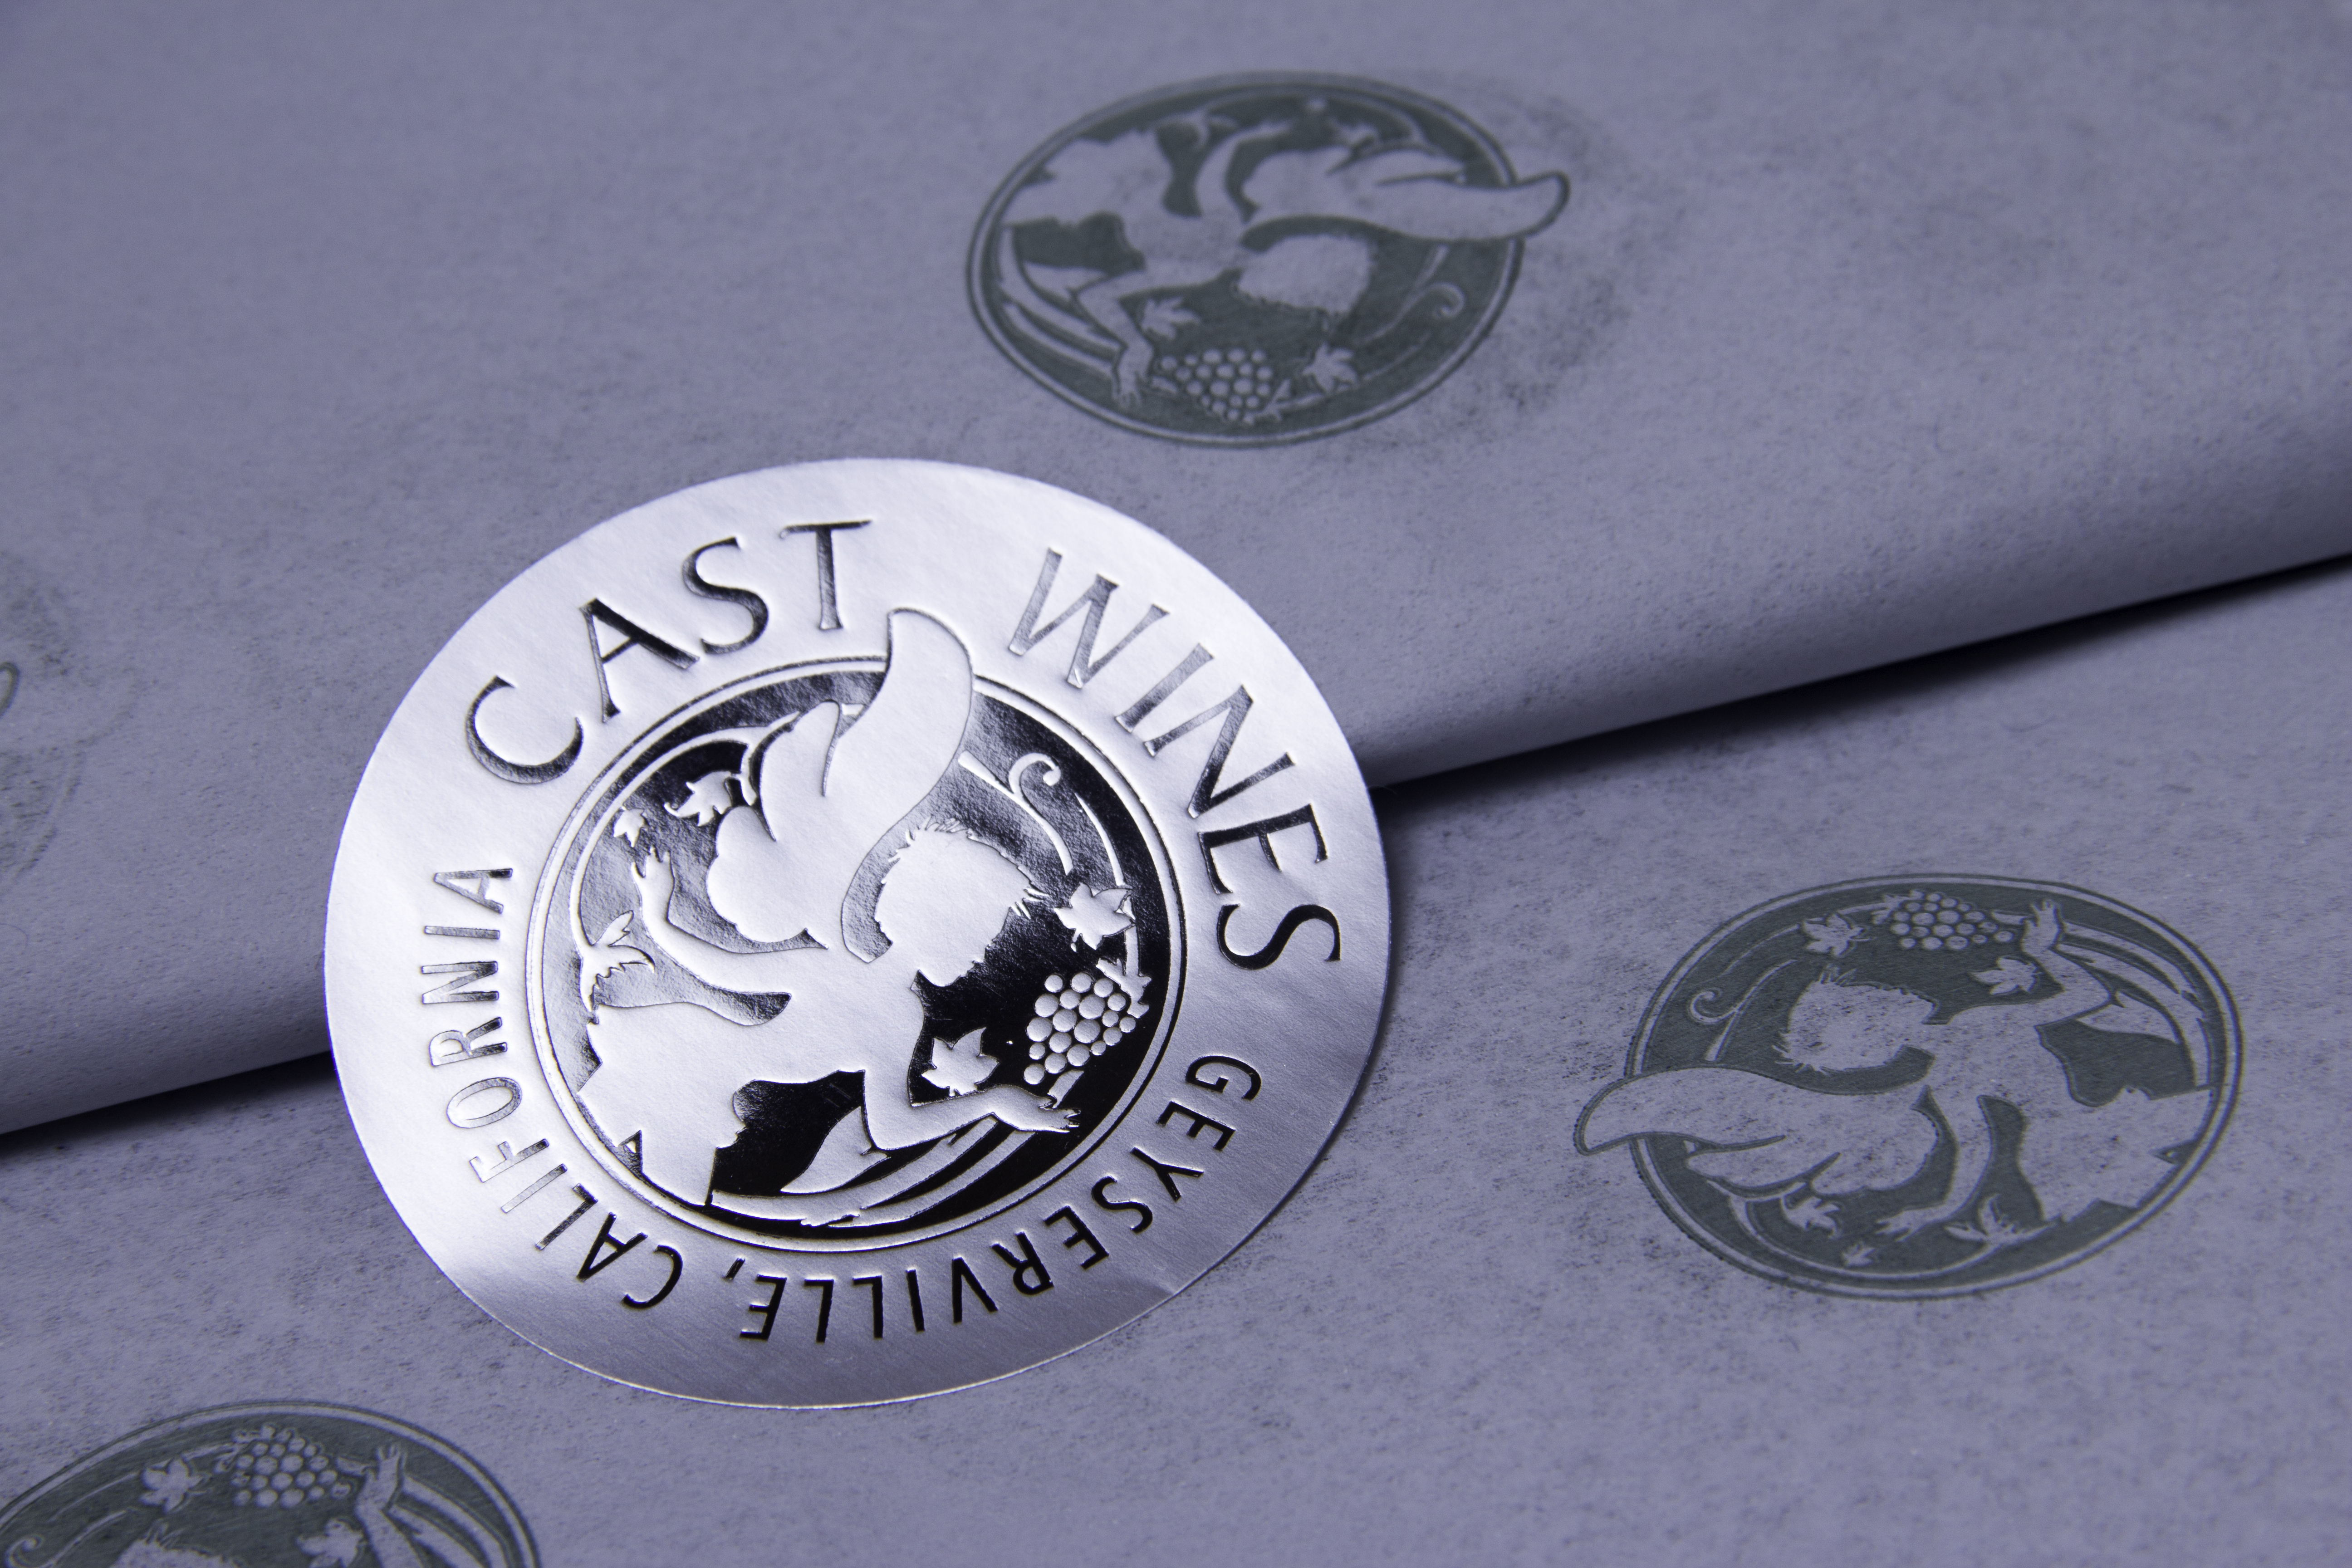 Custom Printed Tissue Paper and Metallic Seal - Cast Wines